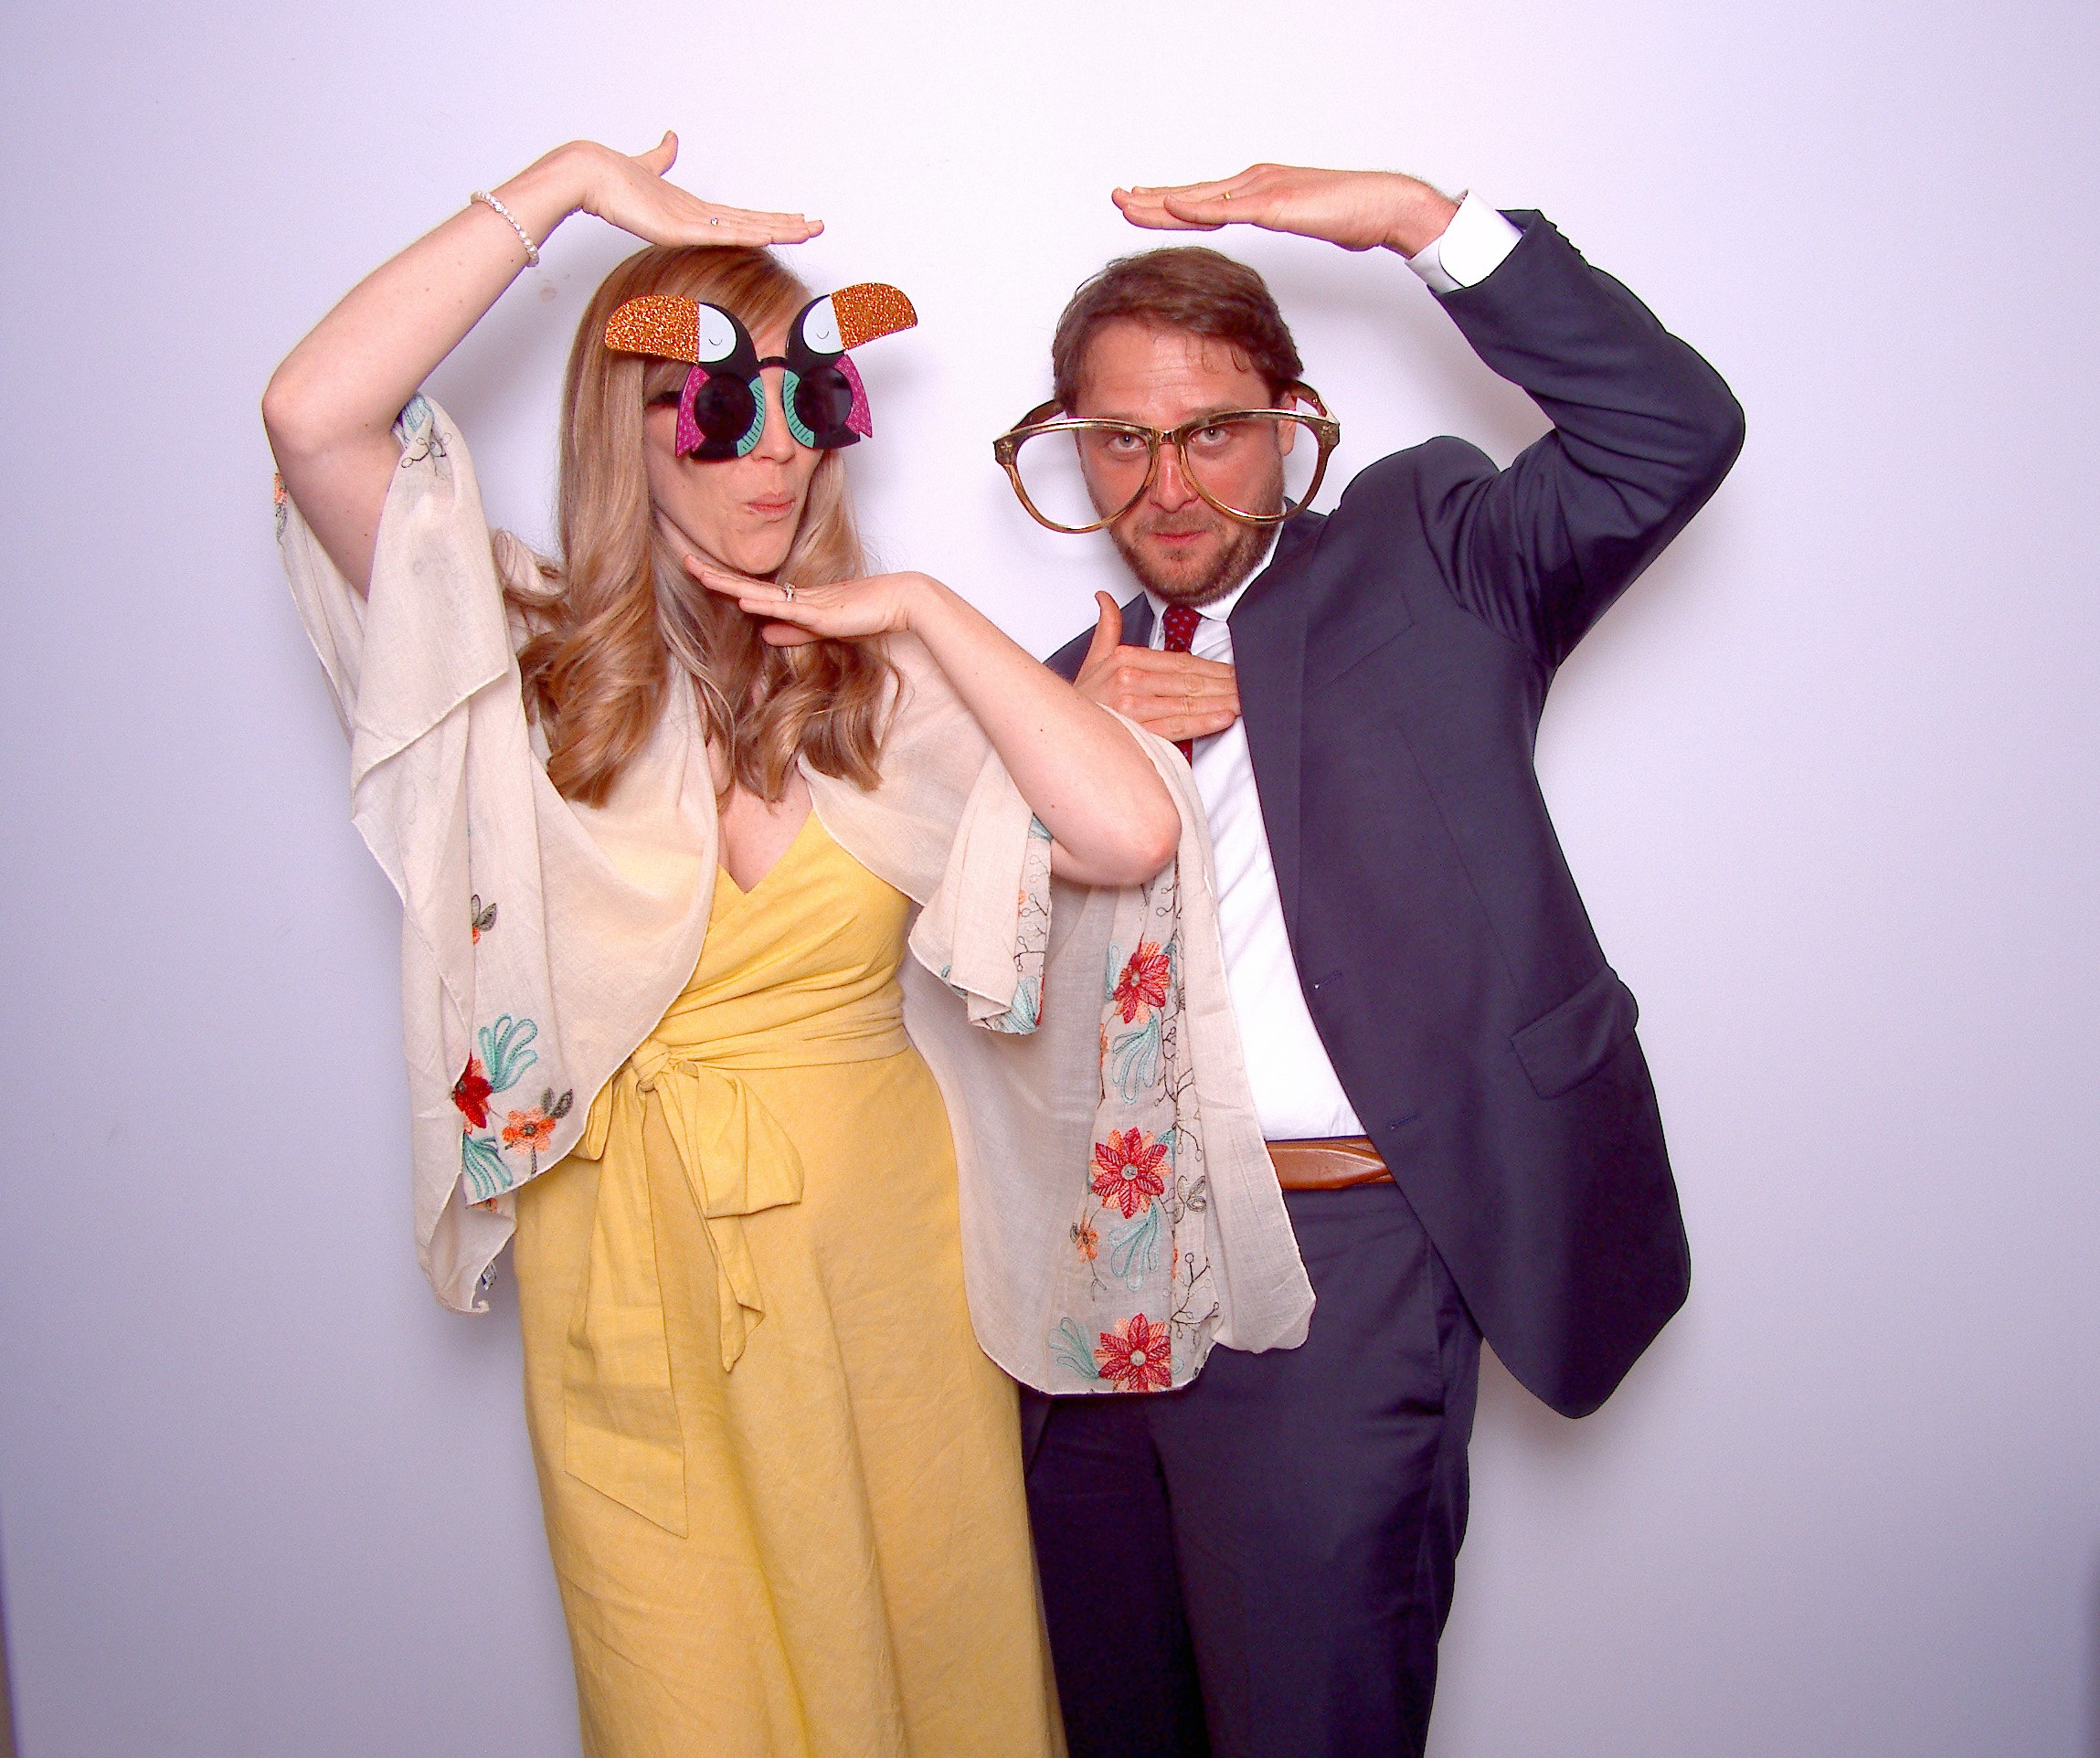 Funny Photo Booth Props